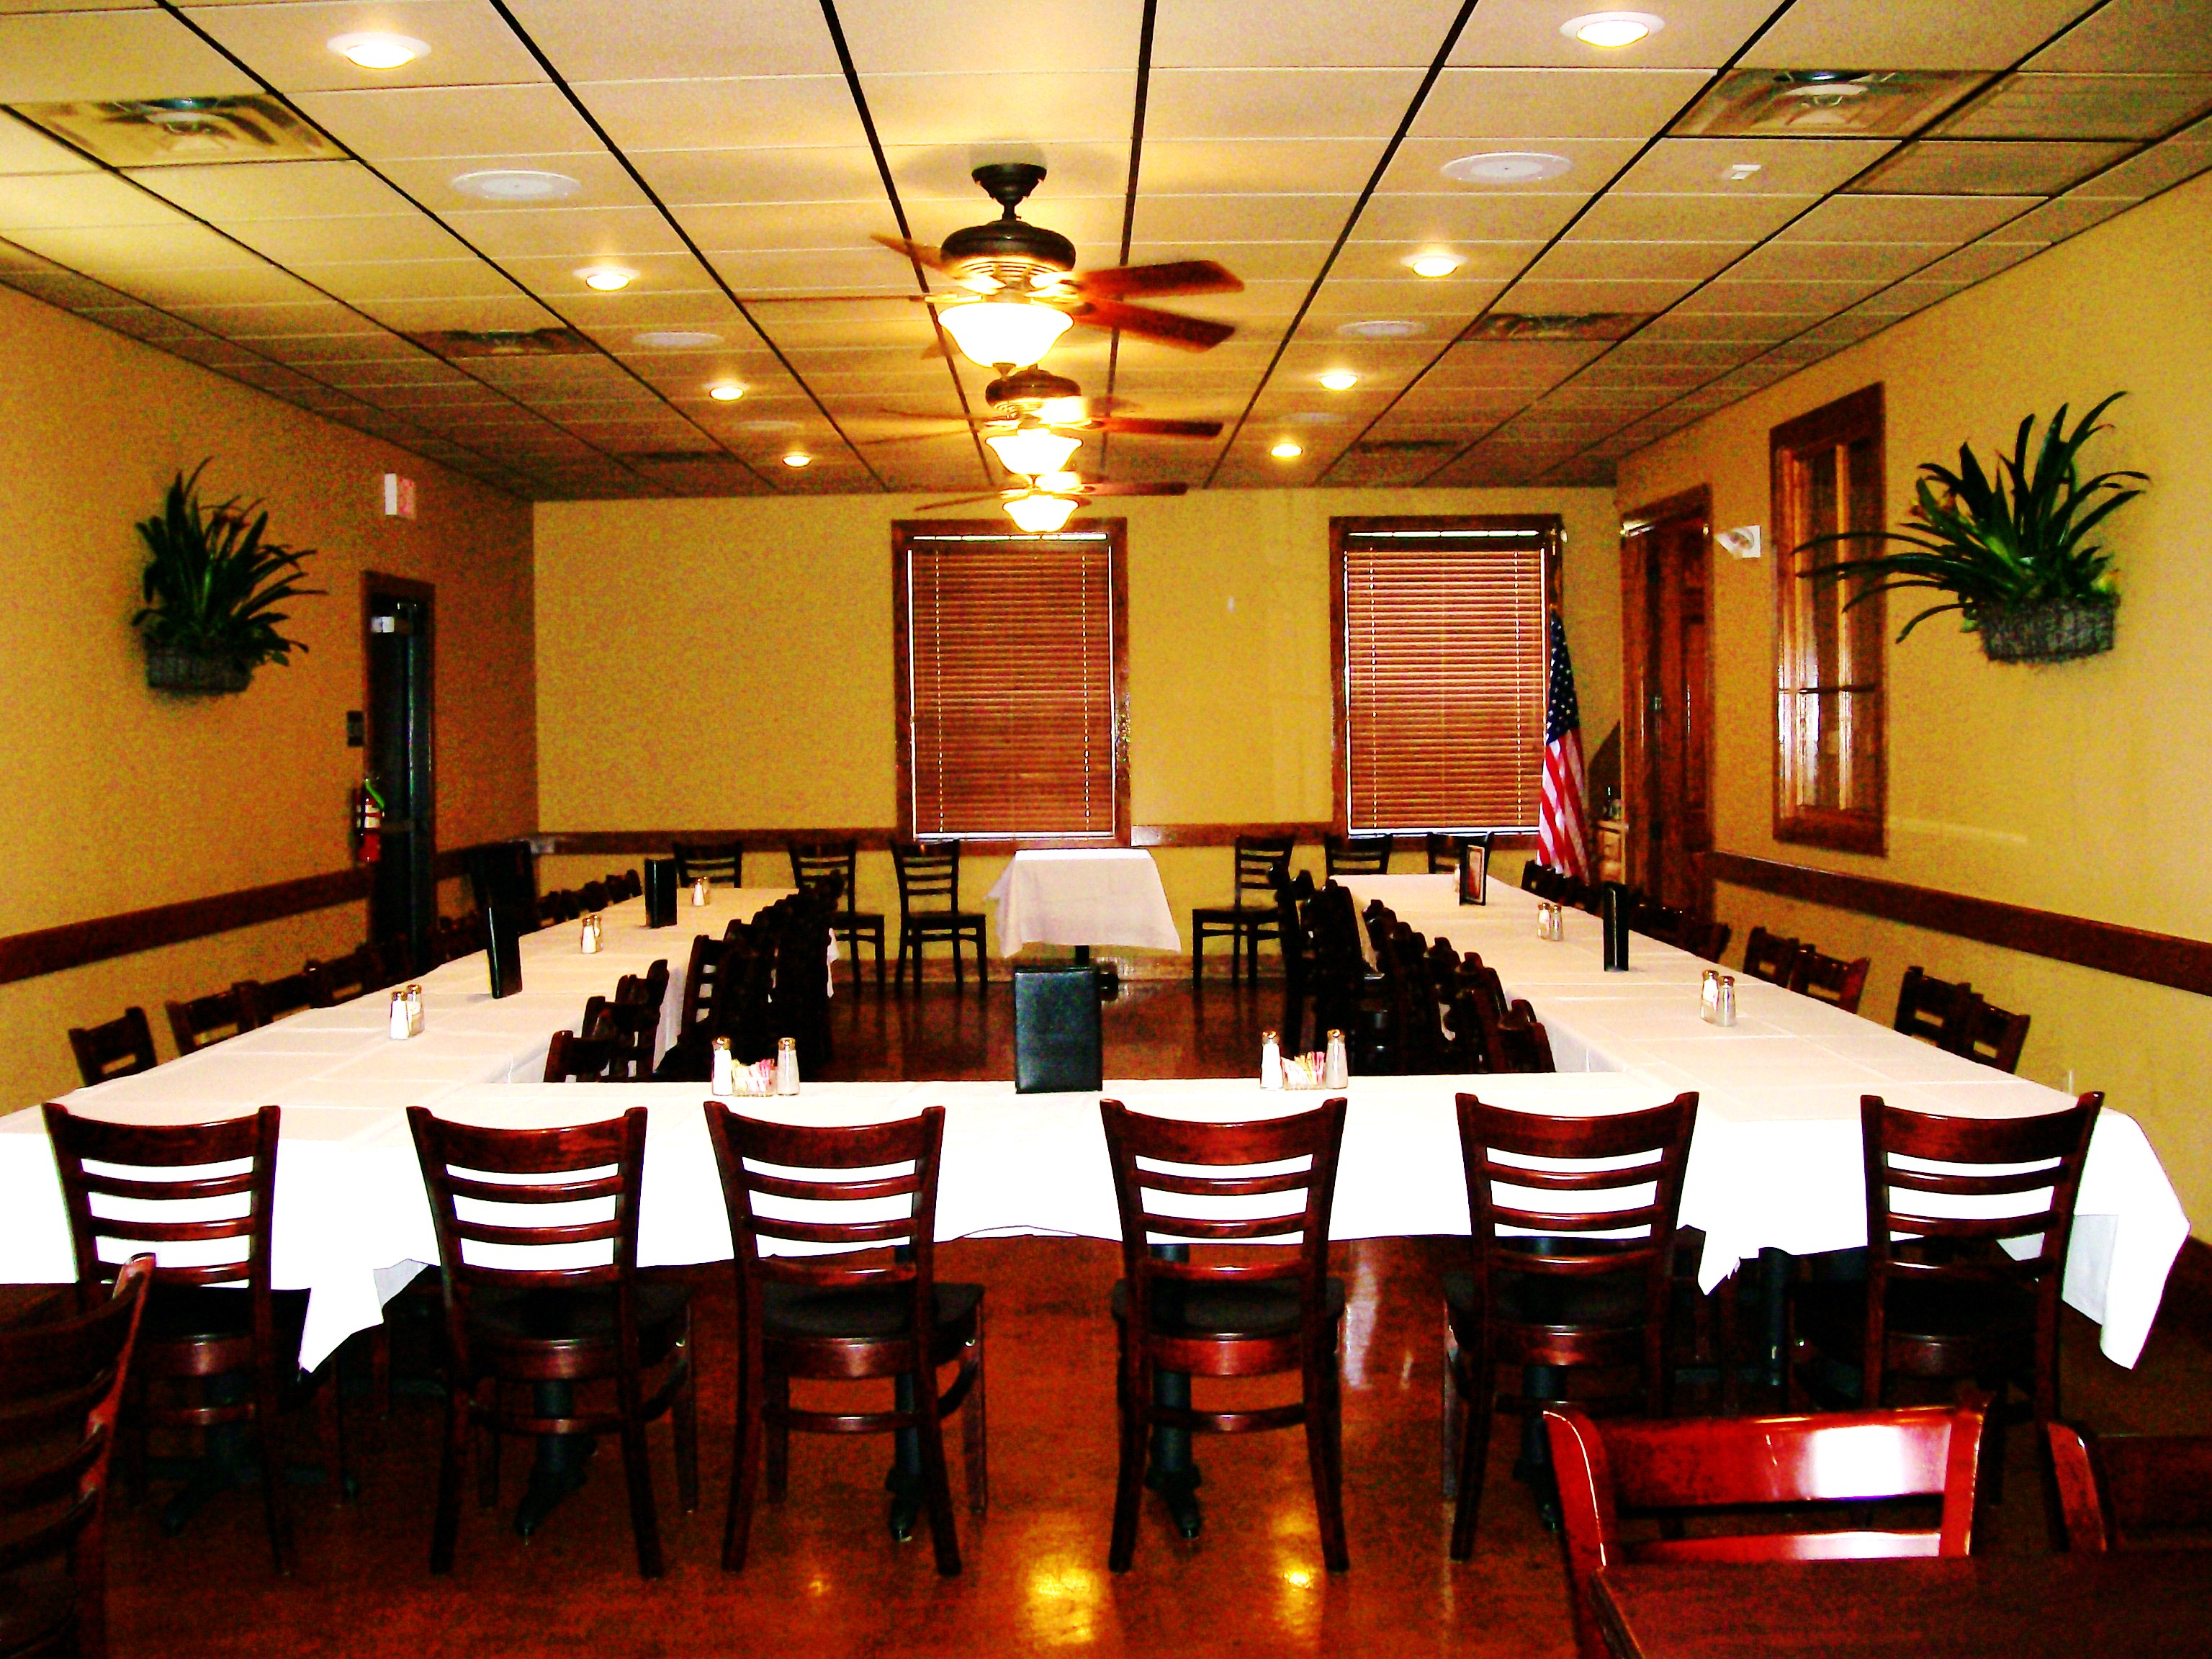 file fezzo s banquet room jpg wikimedia commons